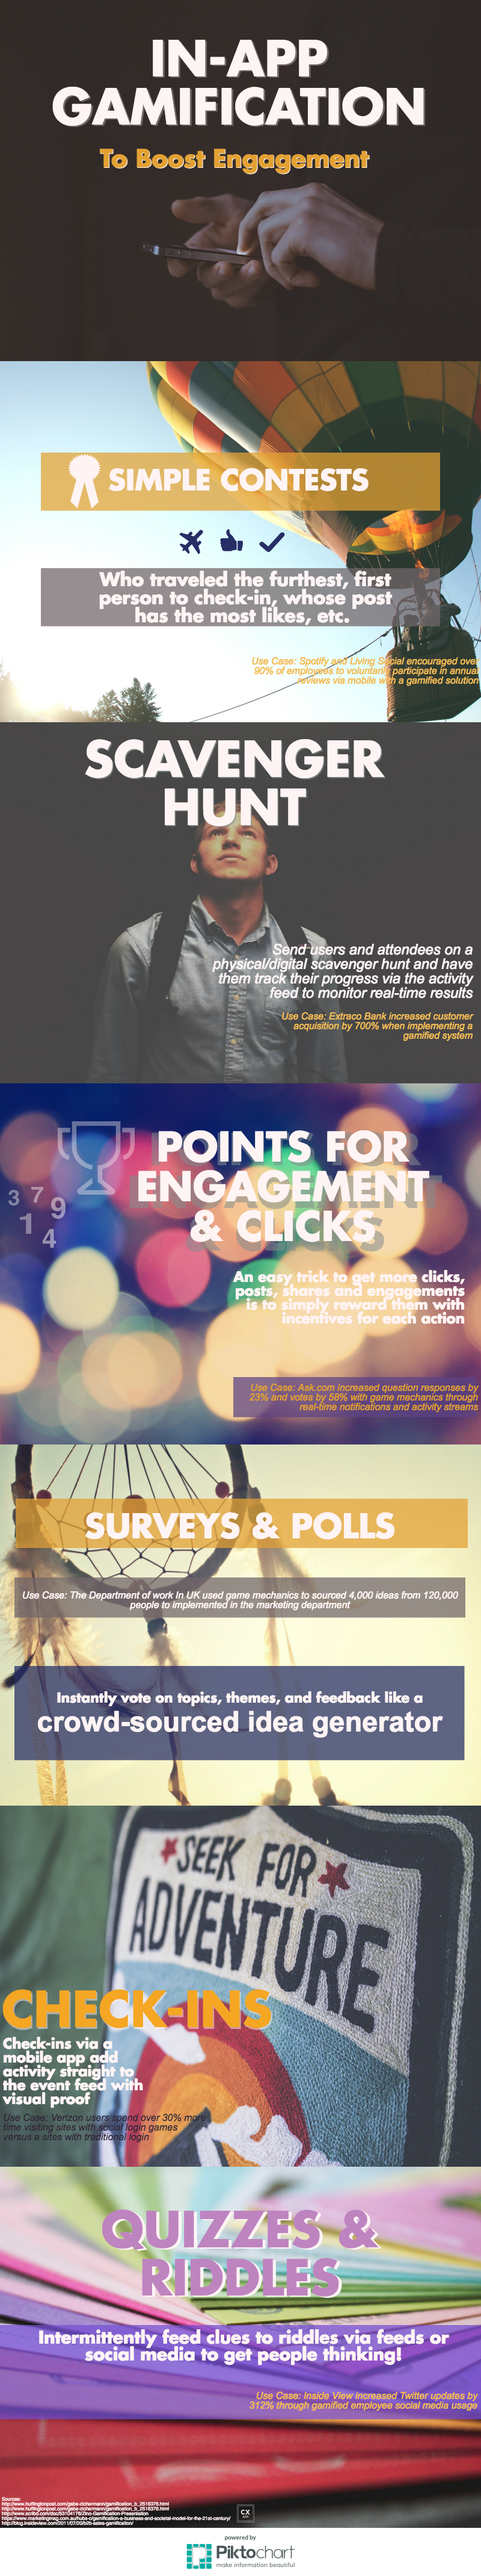 Gamification Ideas to Boost Engagement